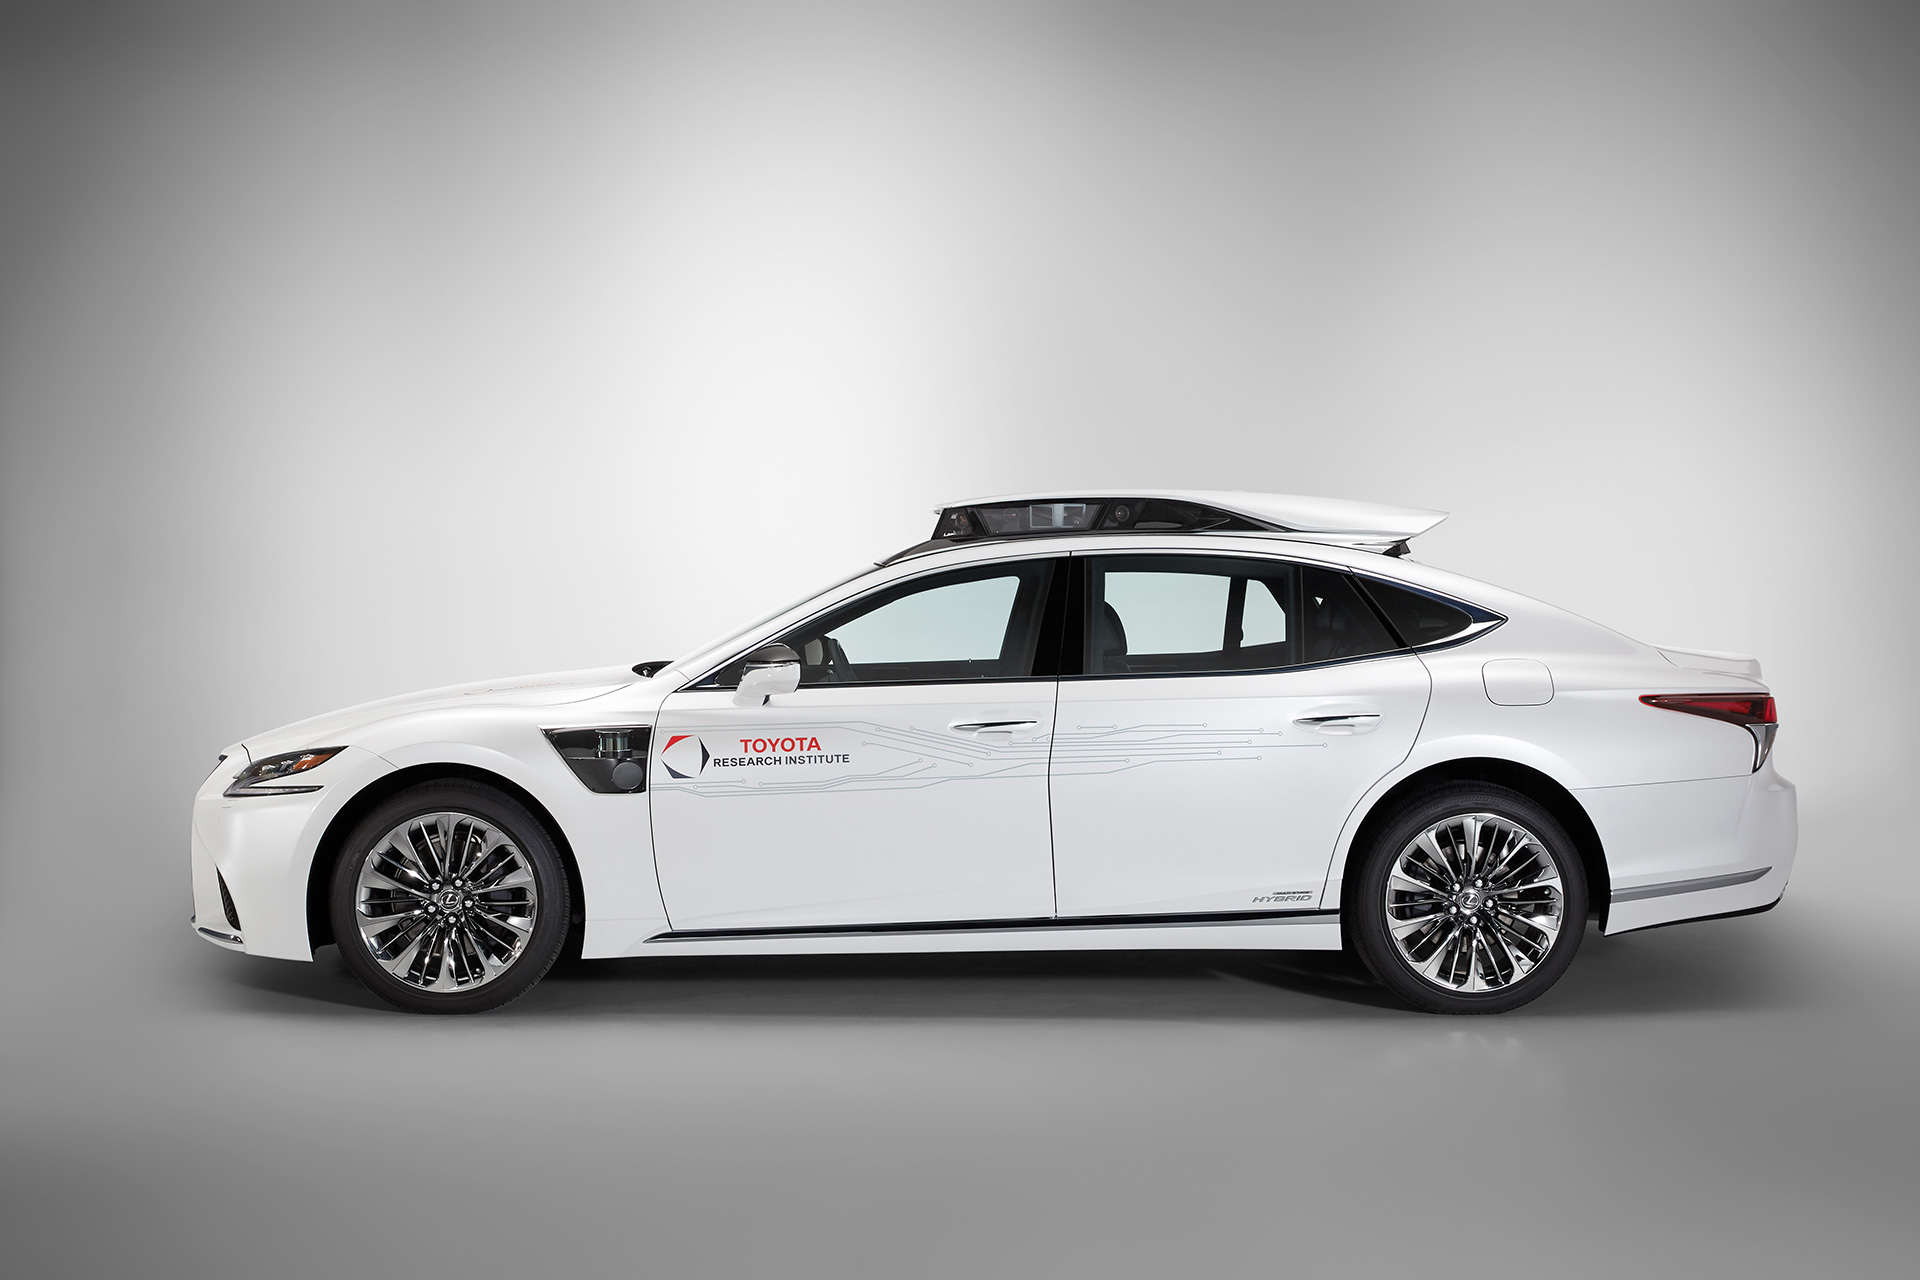 Toyota Research Institute >> Toyota Research Institute Rolls Out P4 Automated Driving